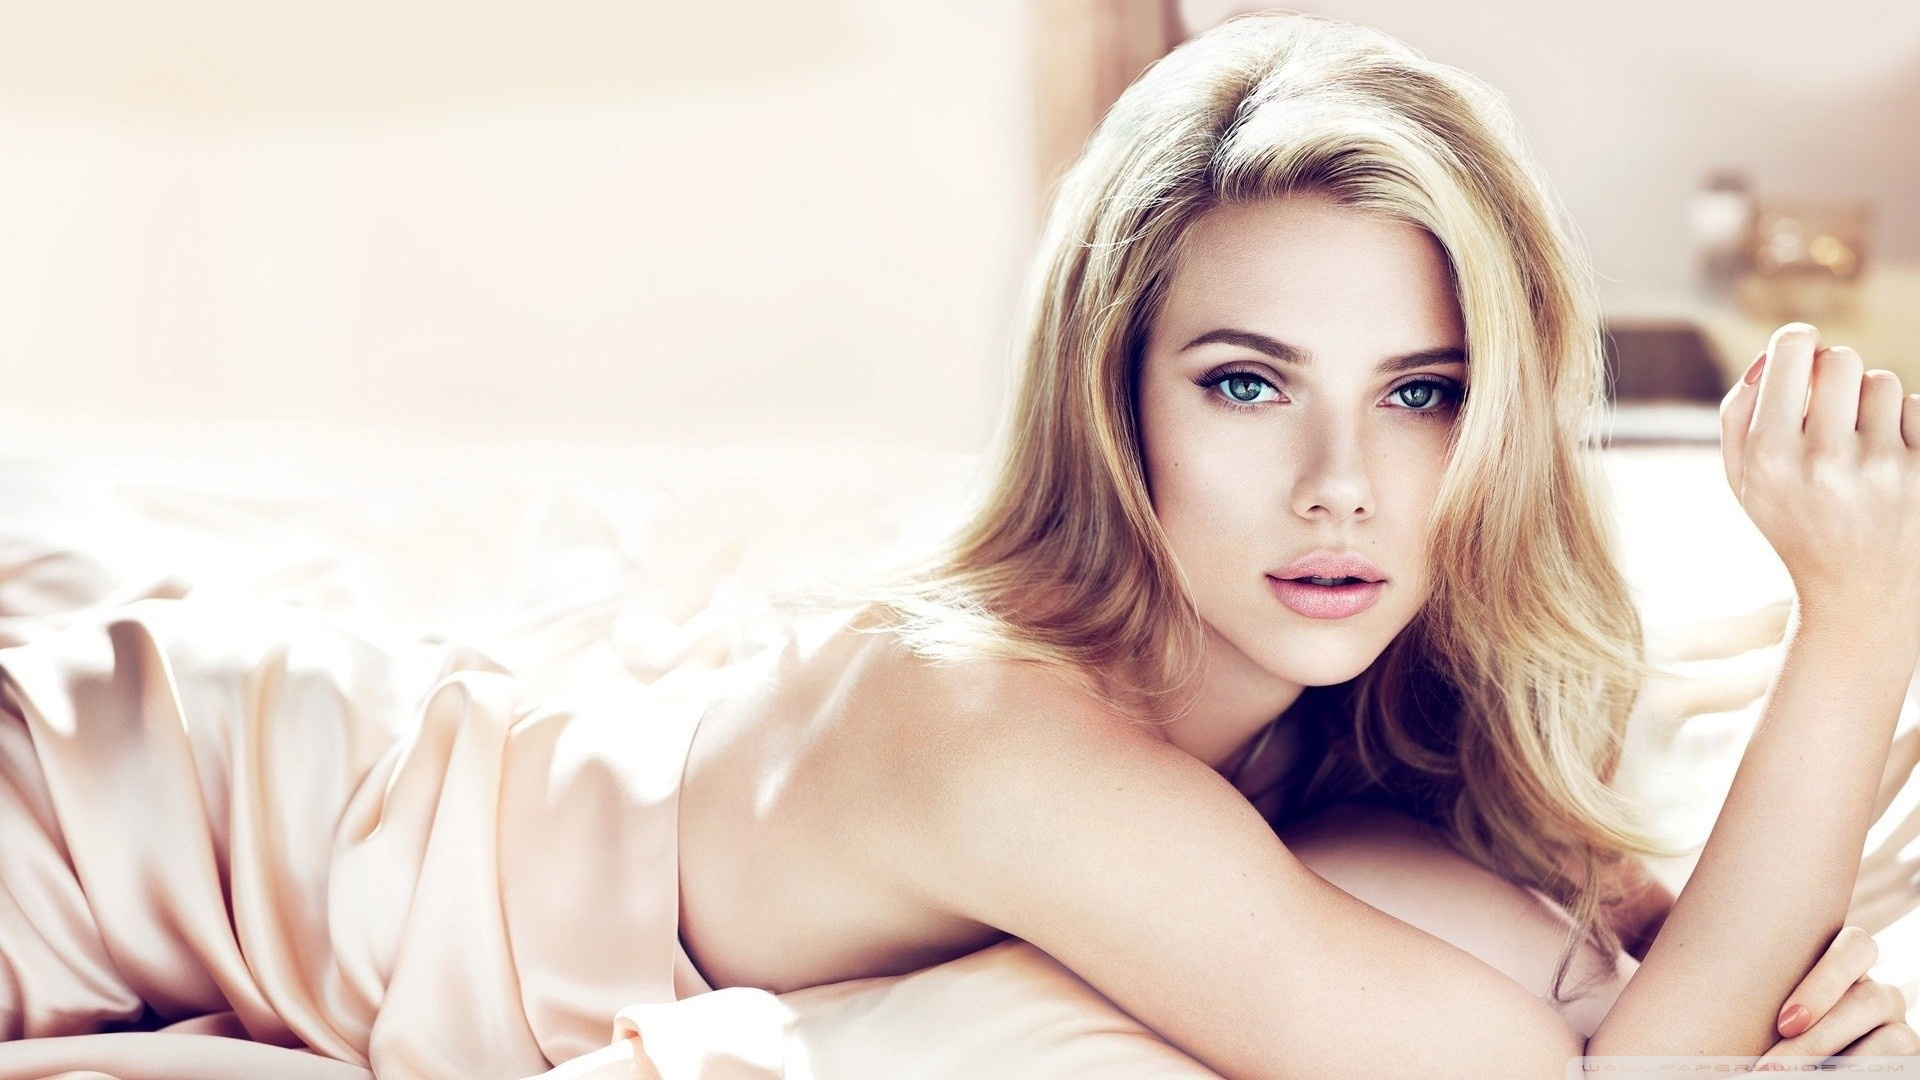 Scarlett Johansson Wallpaper HD